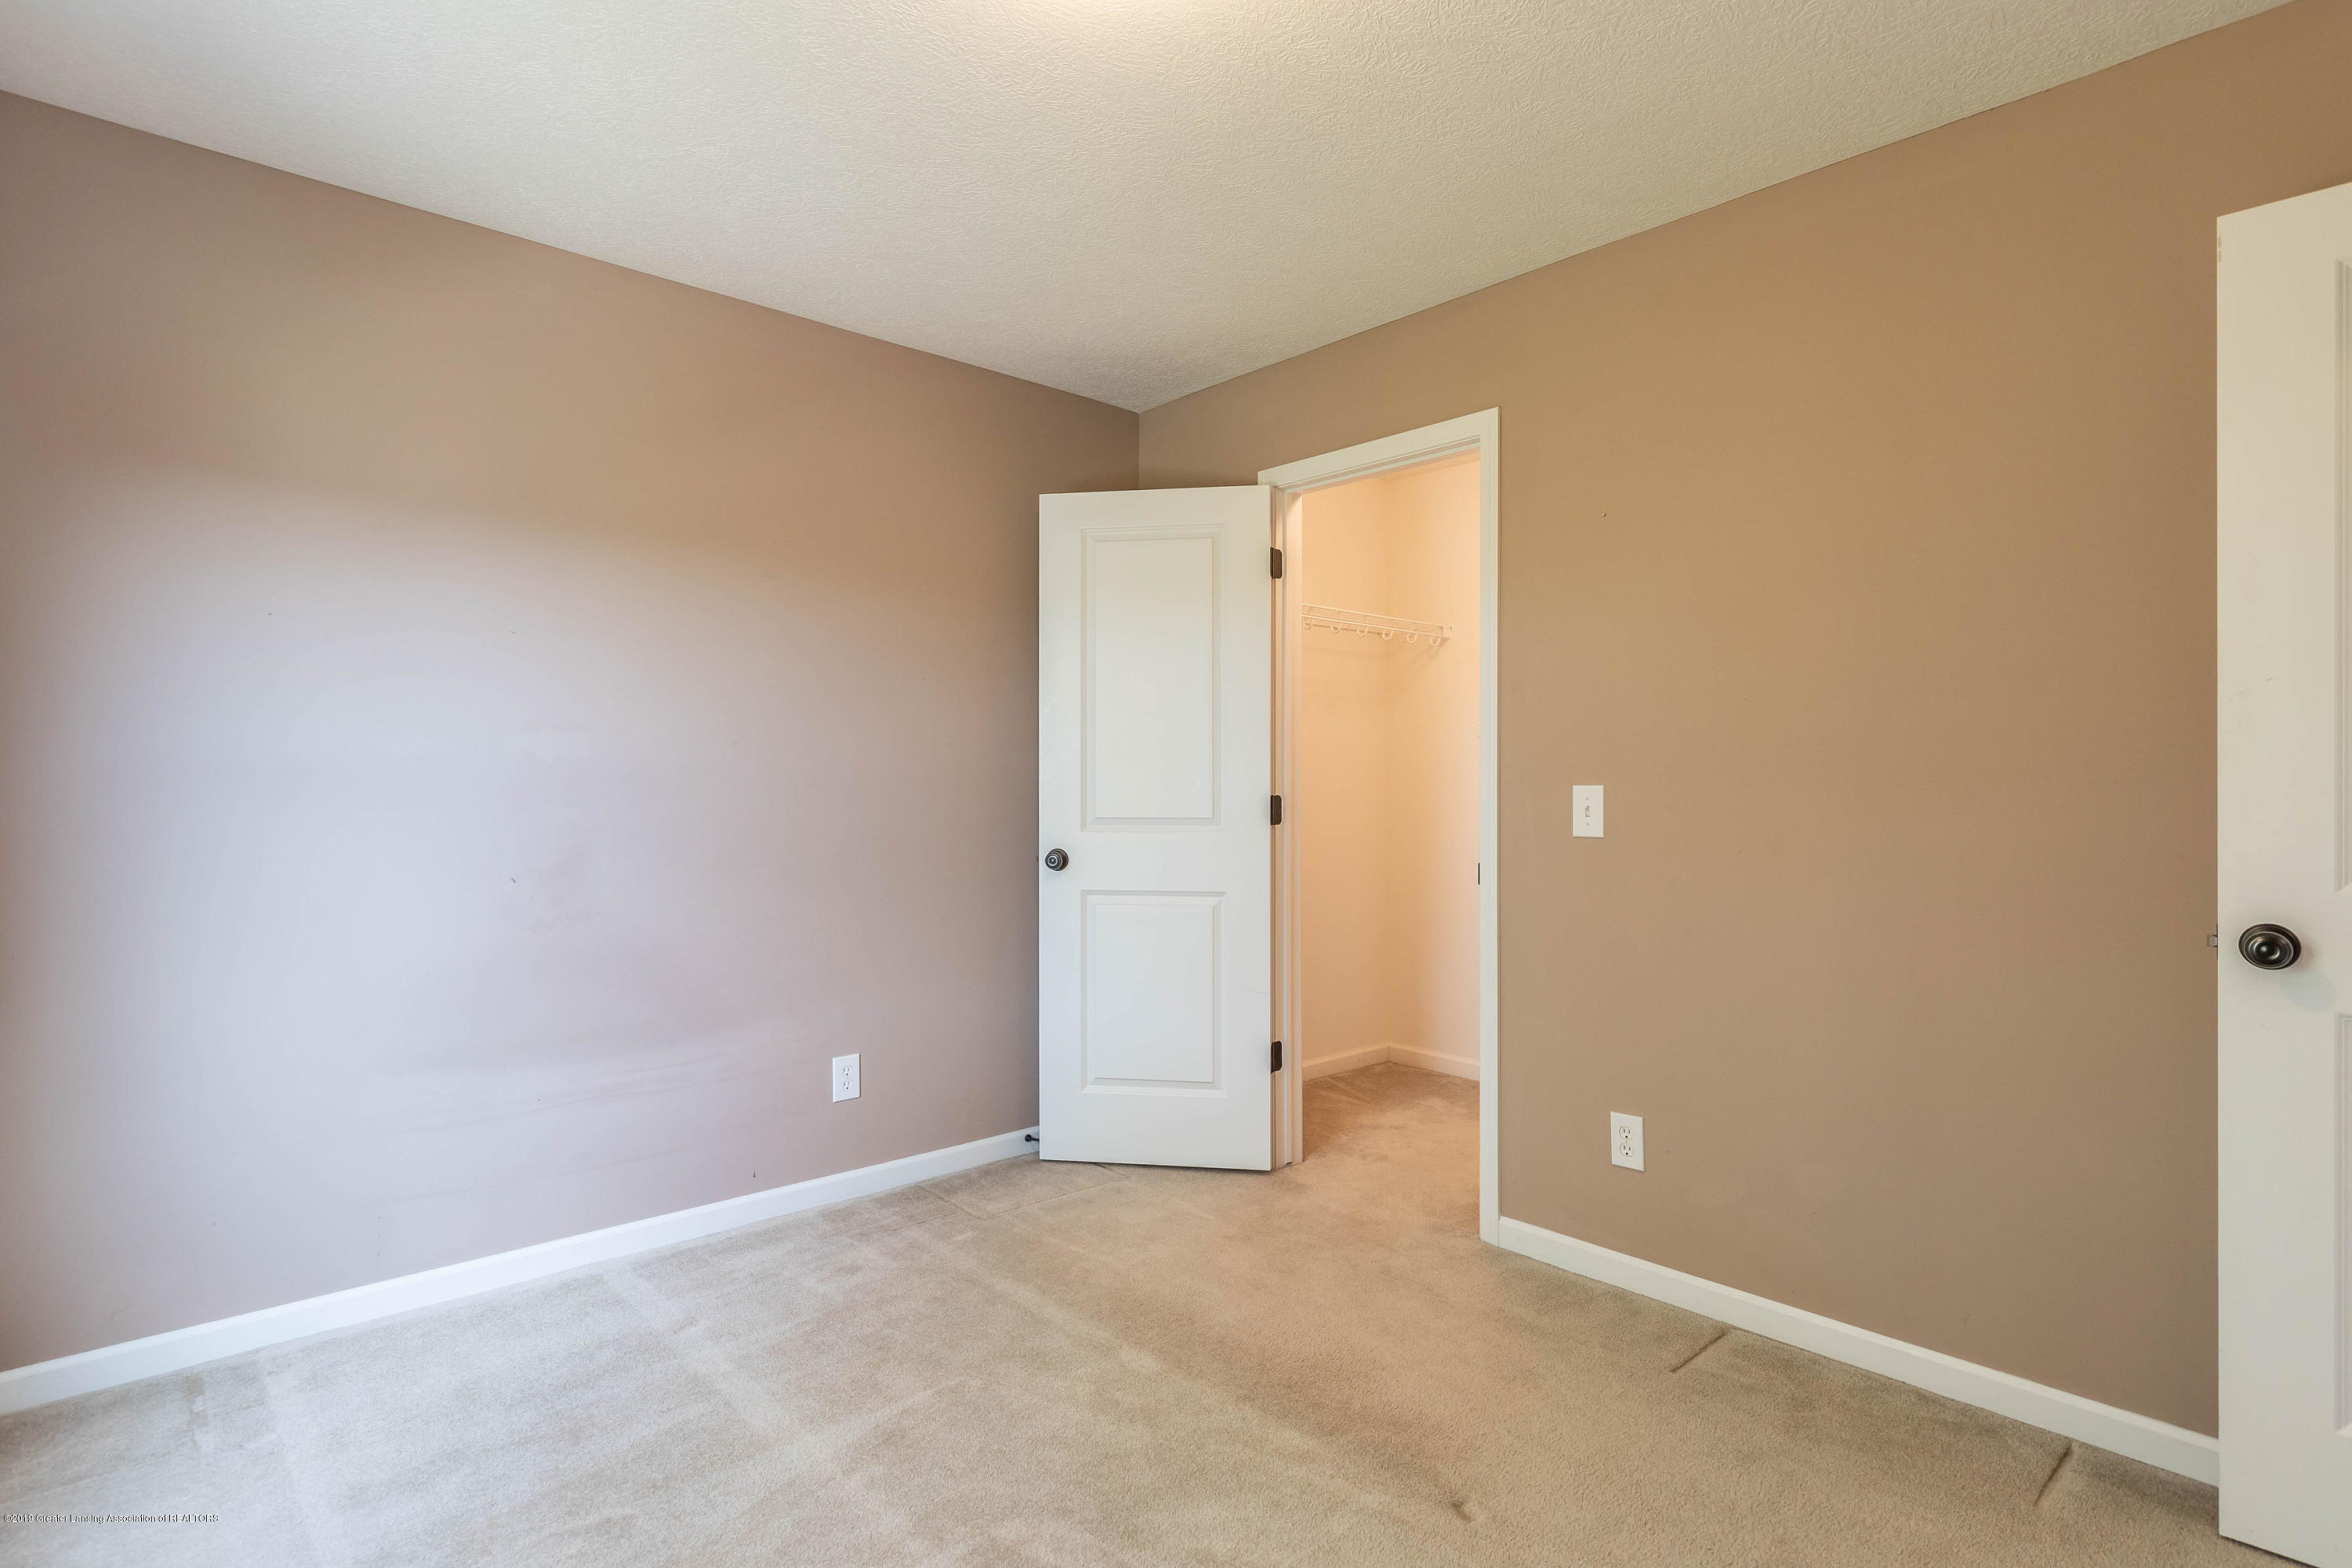 15125 Loxley Ln - loxleybed31(1of1) - 19